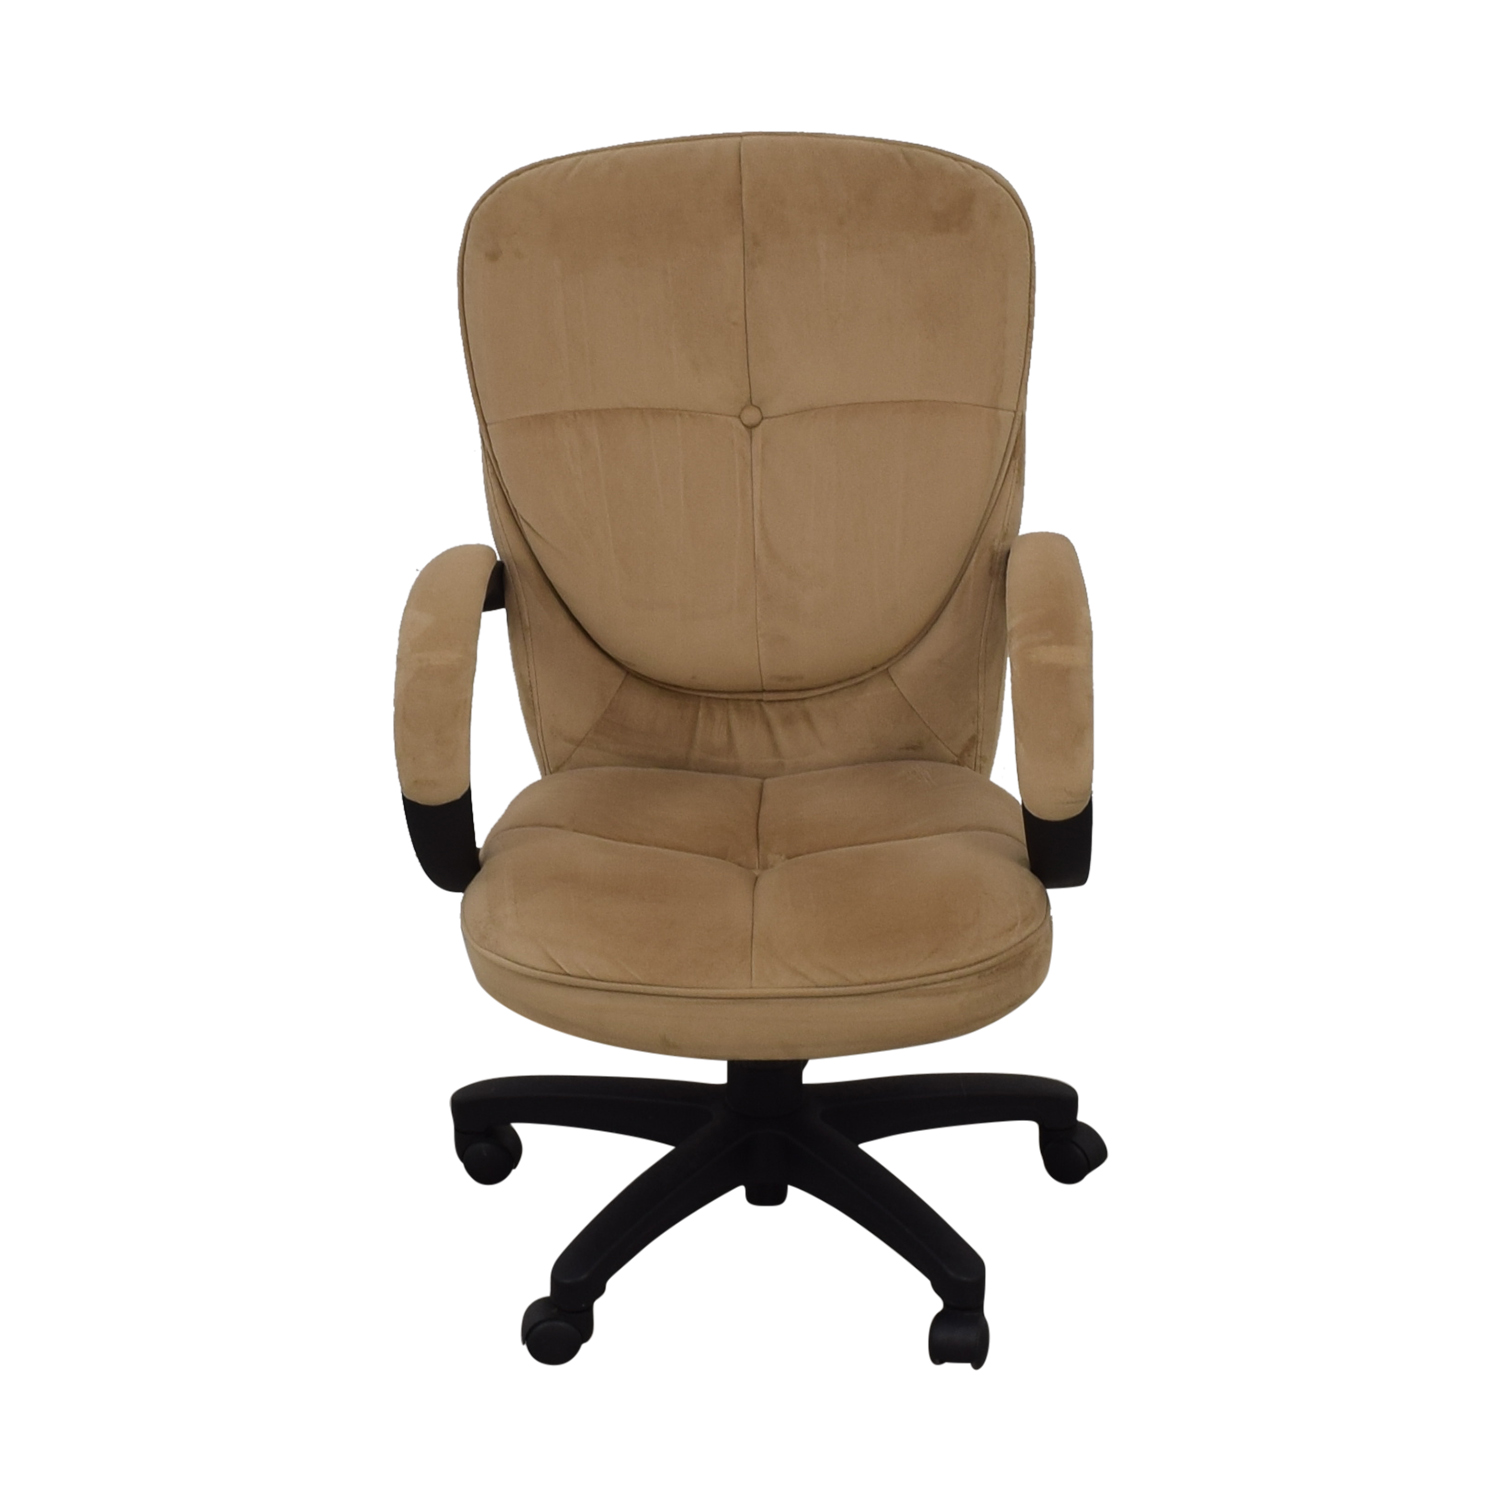 Beige Office Chair price